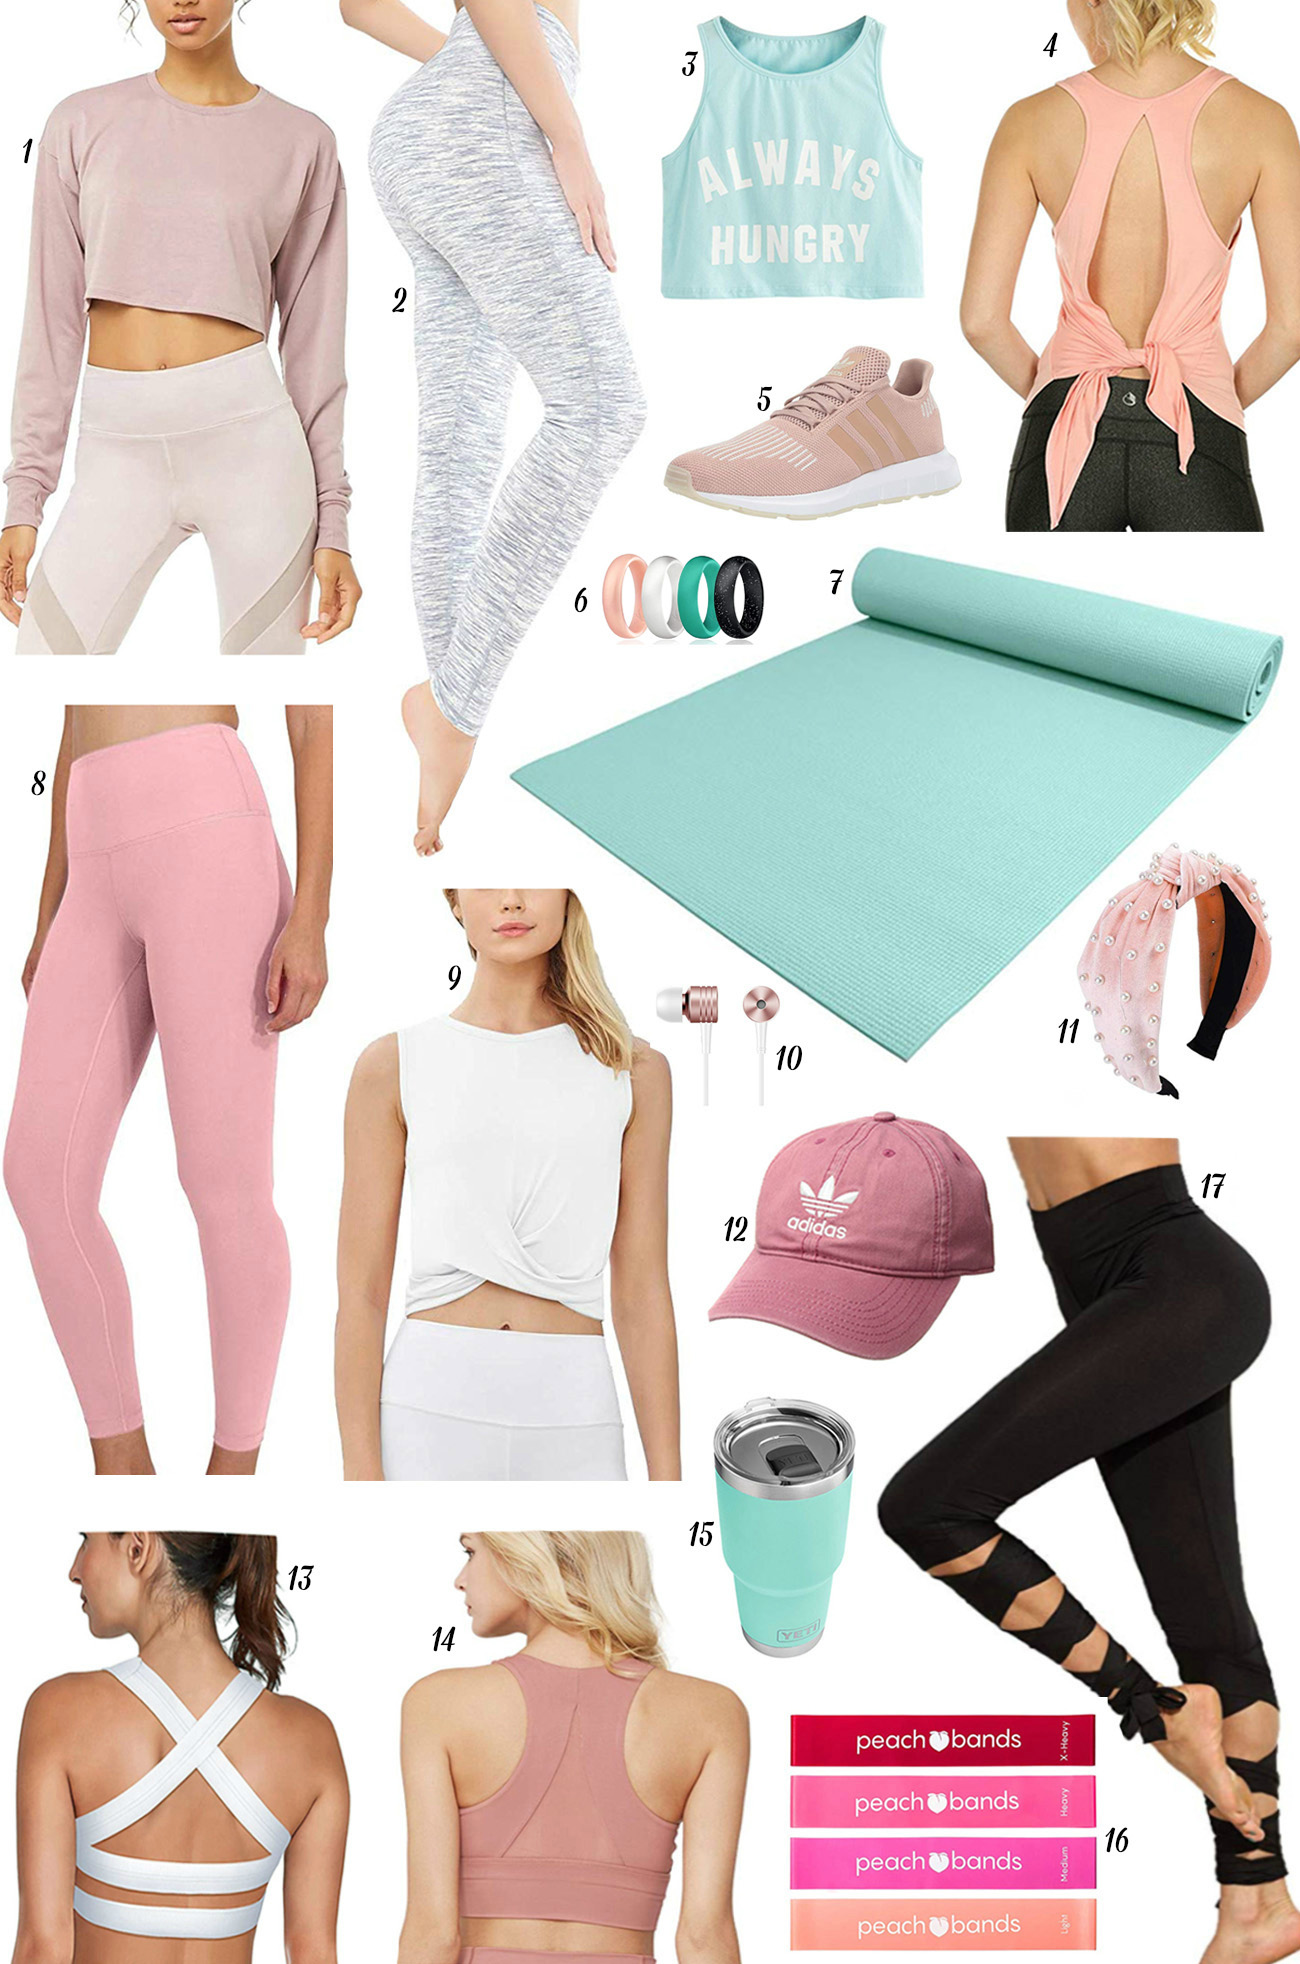 cute sassy workout gear | Mash Elle beauty blogger | fashion blogger | what to wear at the gym | gym outfit | always hungry tee | leggings